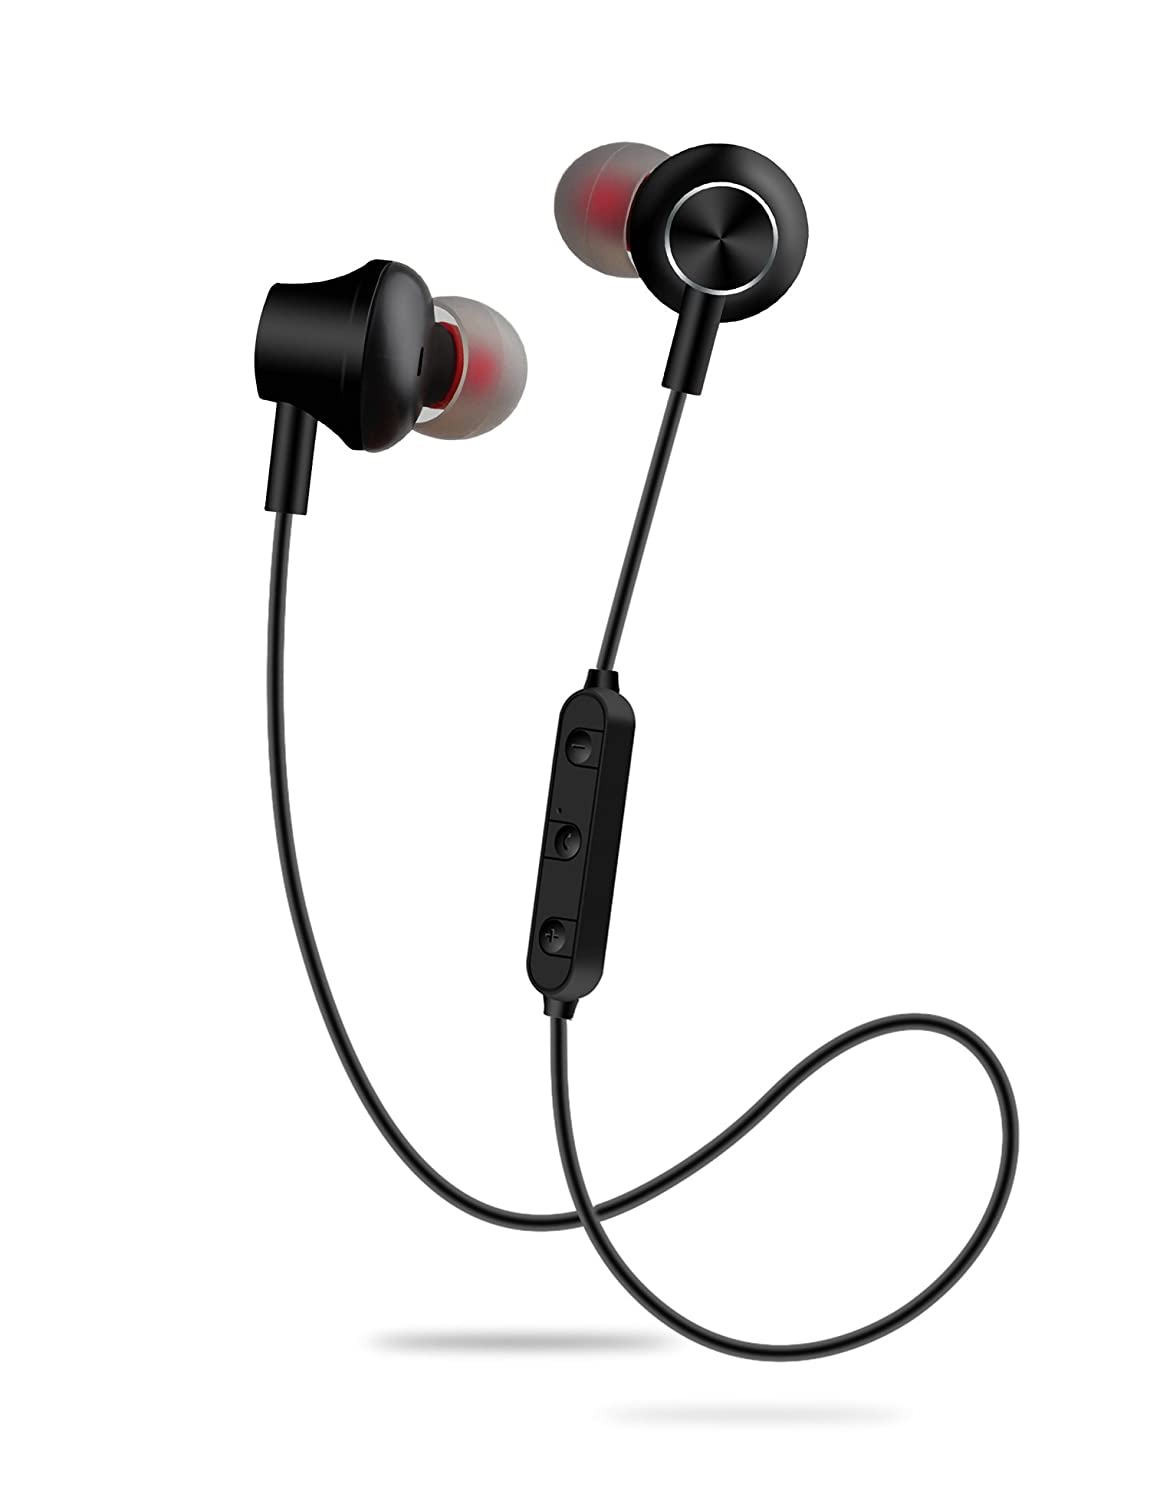 Wiw Bluetooth Headphones Wireless Earbuds Magnetic Stereo Earphones IPX4 Gym Earphones with Built-in Mic Black